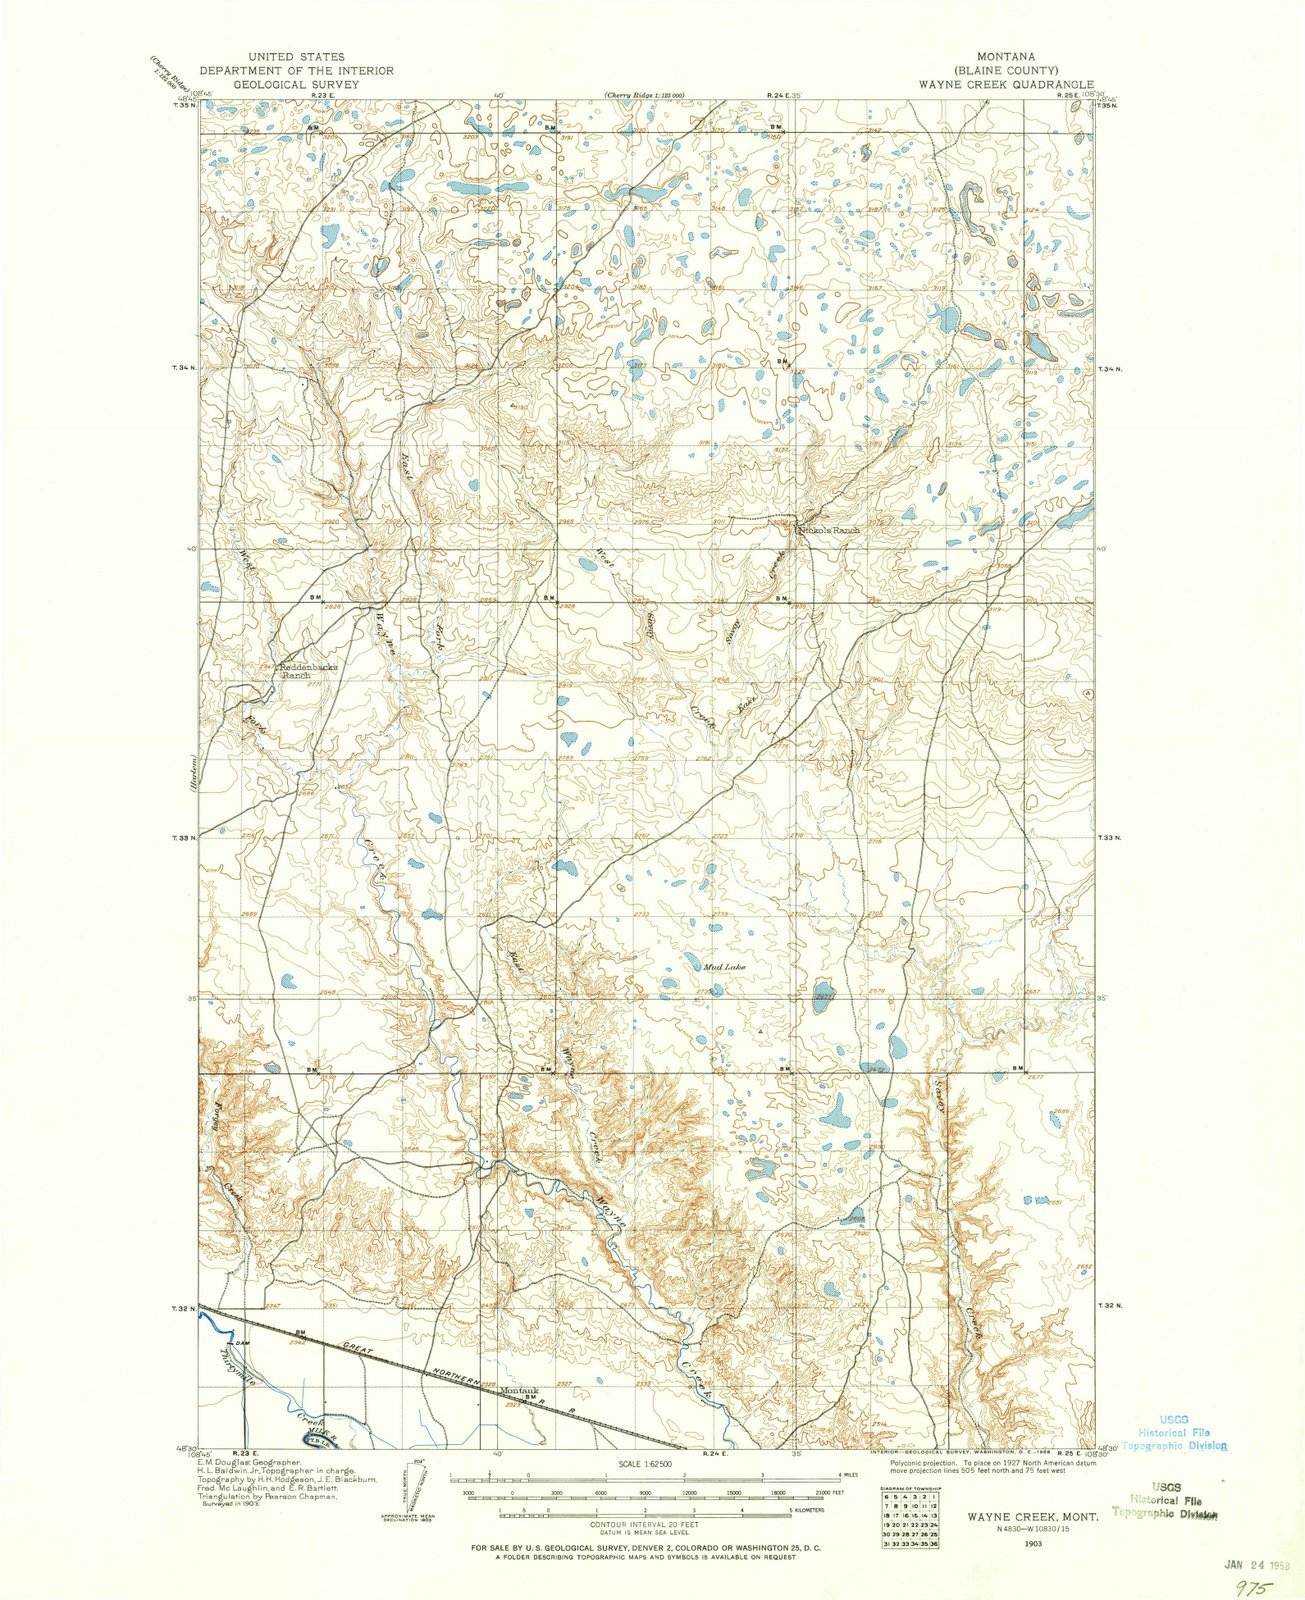 Montana Maps - 1903 Wayne Creek, MT USGS Historical Topographic Map - Cartography Wall Art - 44in x 55in by Historic Pictoric